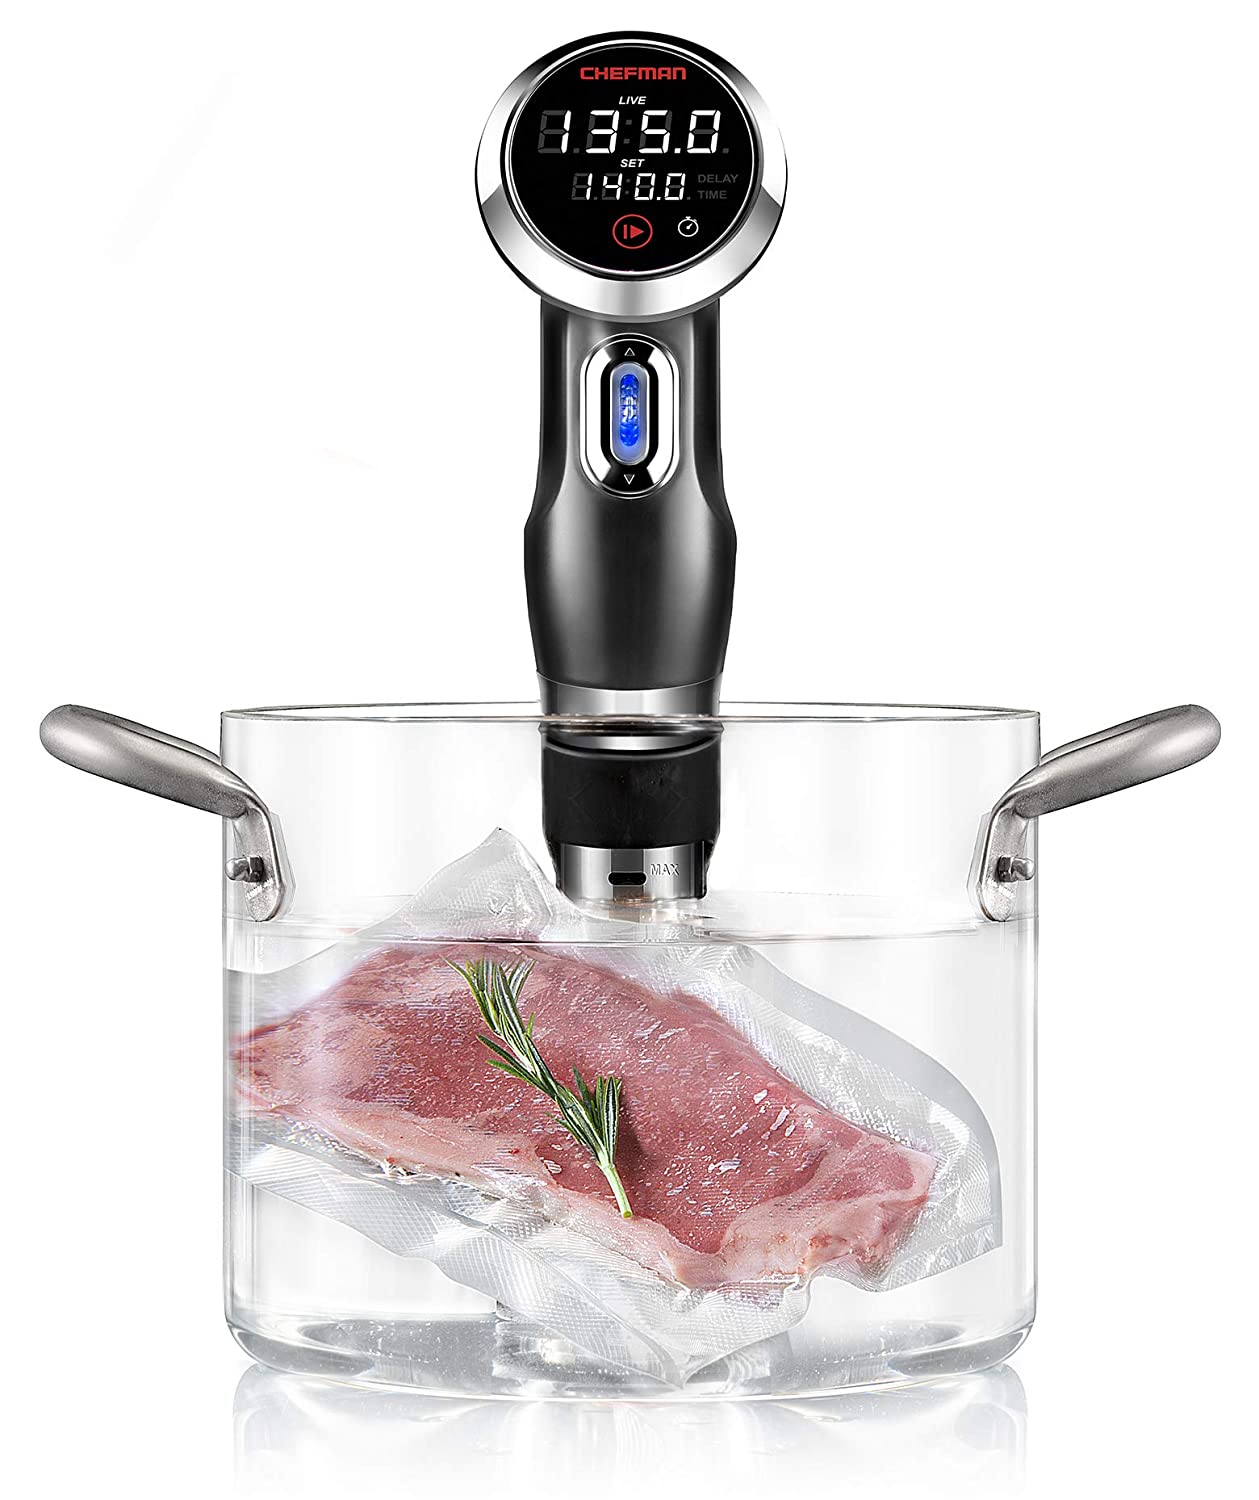 Chefman Sous Vide Immersion Circulator w/Accurate Temperature, Programmable Digital Touch Screen Display and Intuitive Controls, 1100 Watts, Black - Version 3